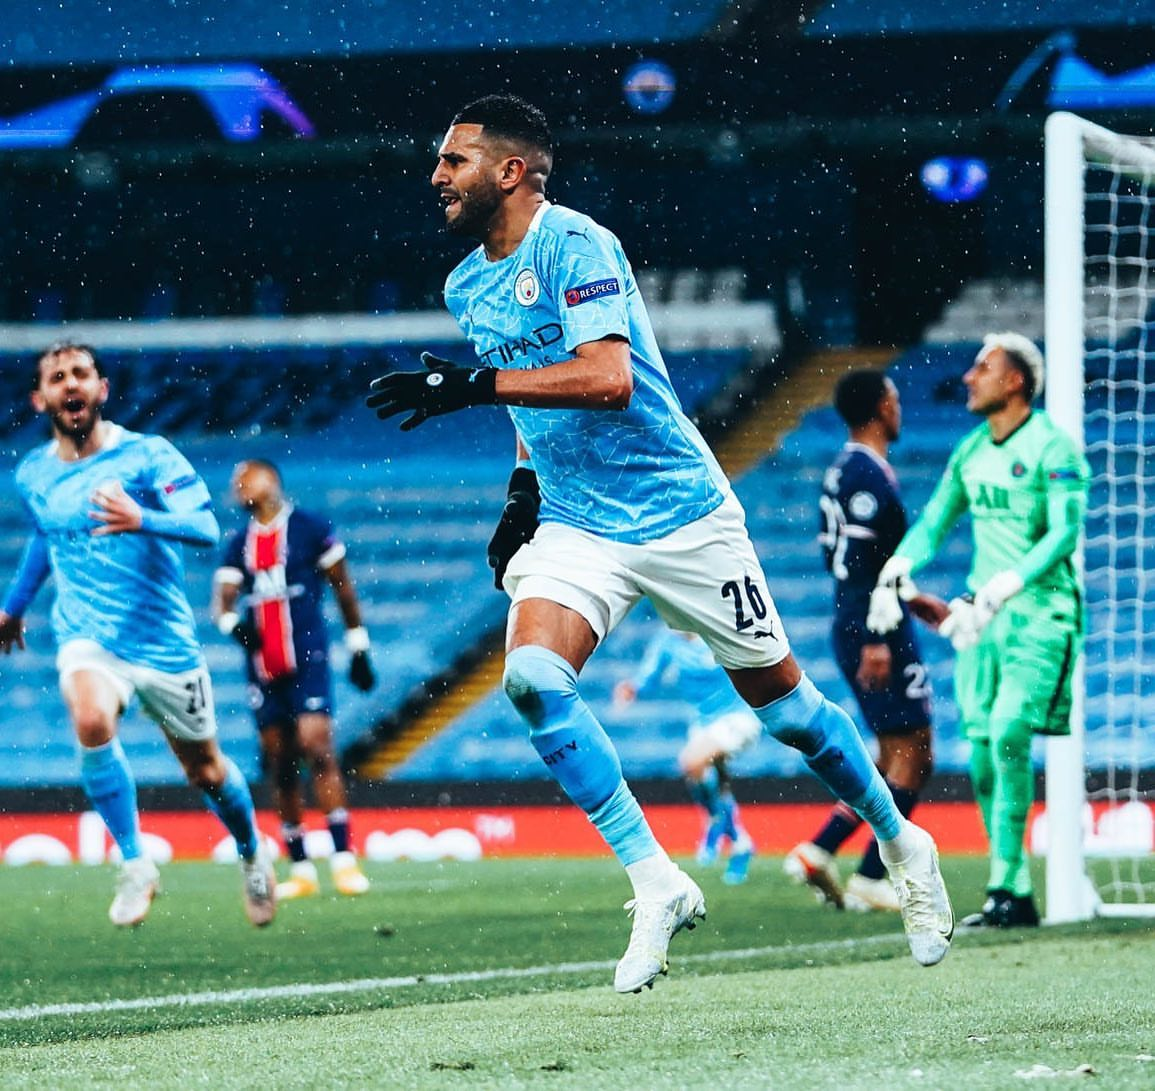 Manchester City thrash PSG to reach first ever UEFA Champions League final